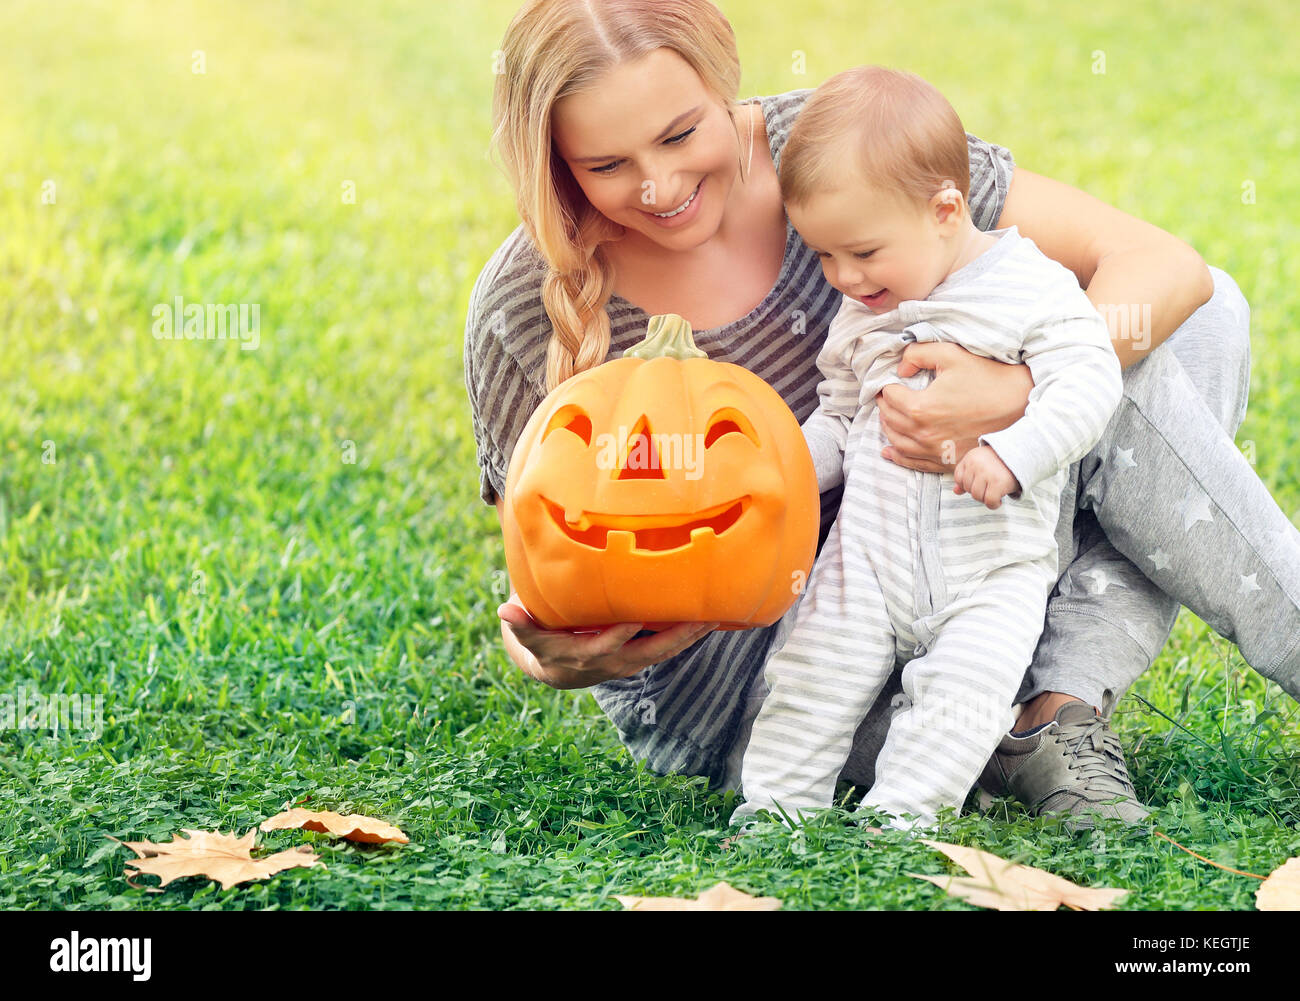 Happy mother with little baby outdoors, sitting on the green grass field and playing with orange carved pumpkin - Stock Image